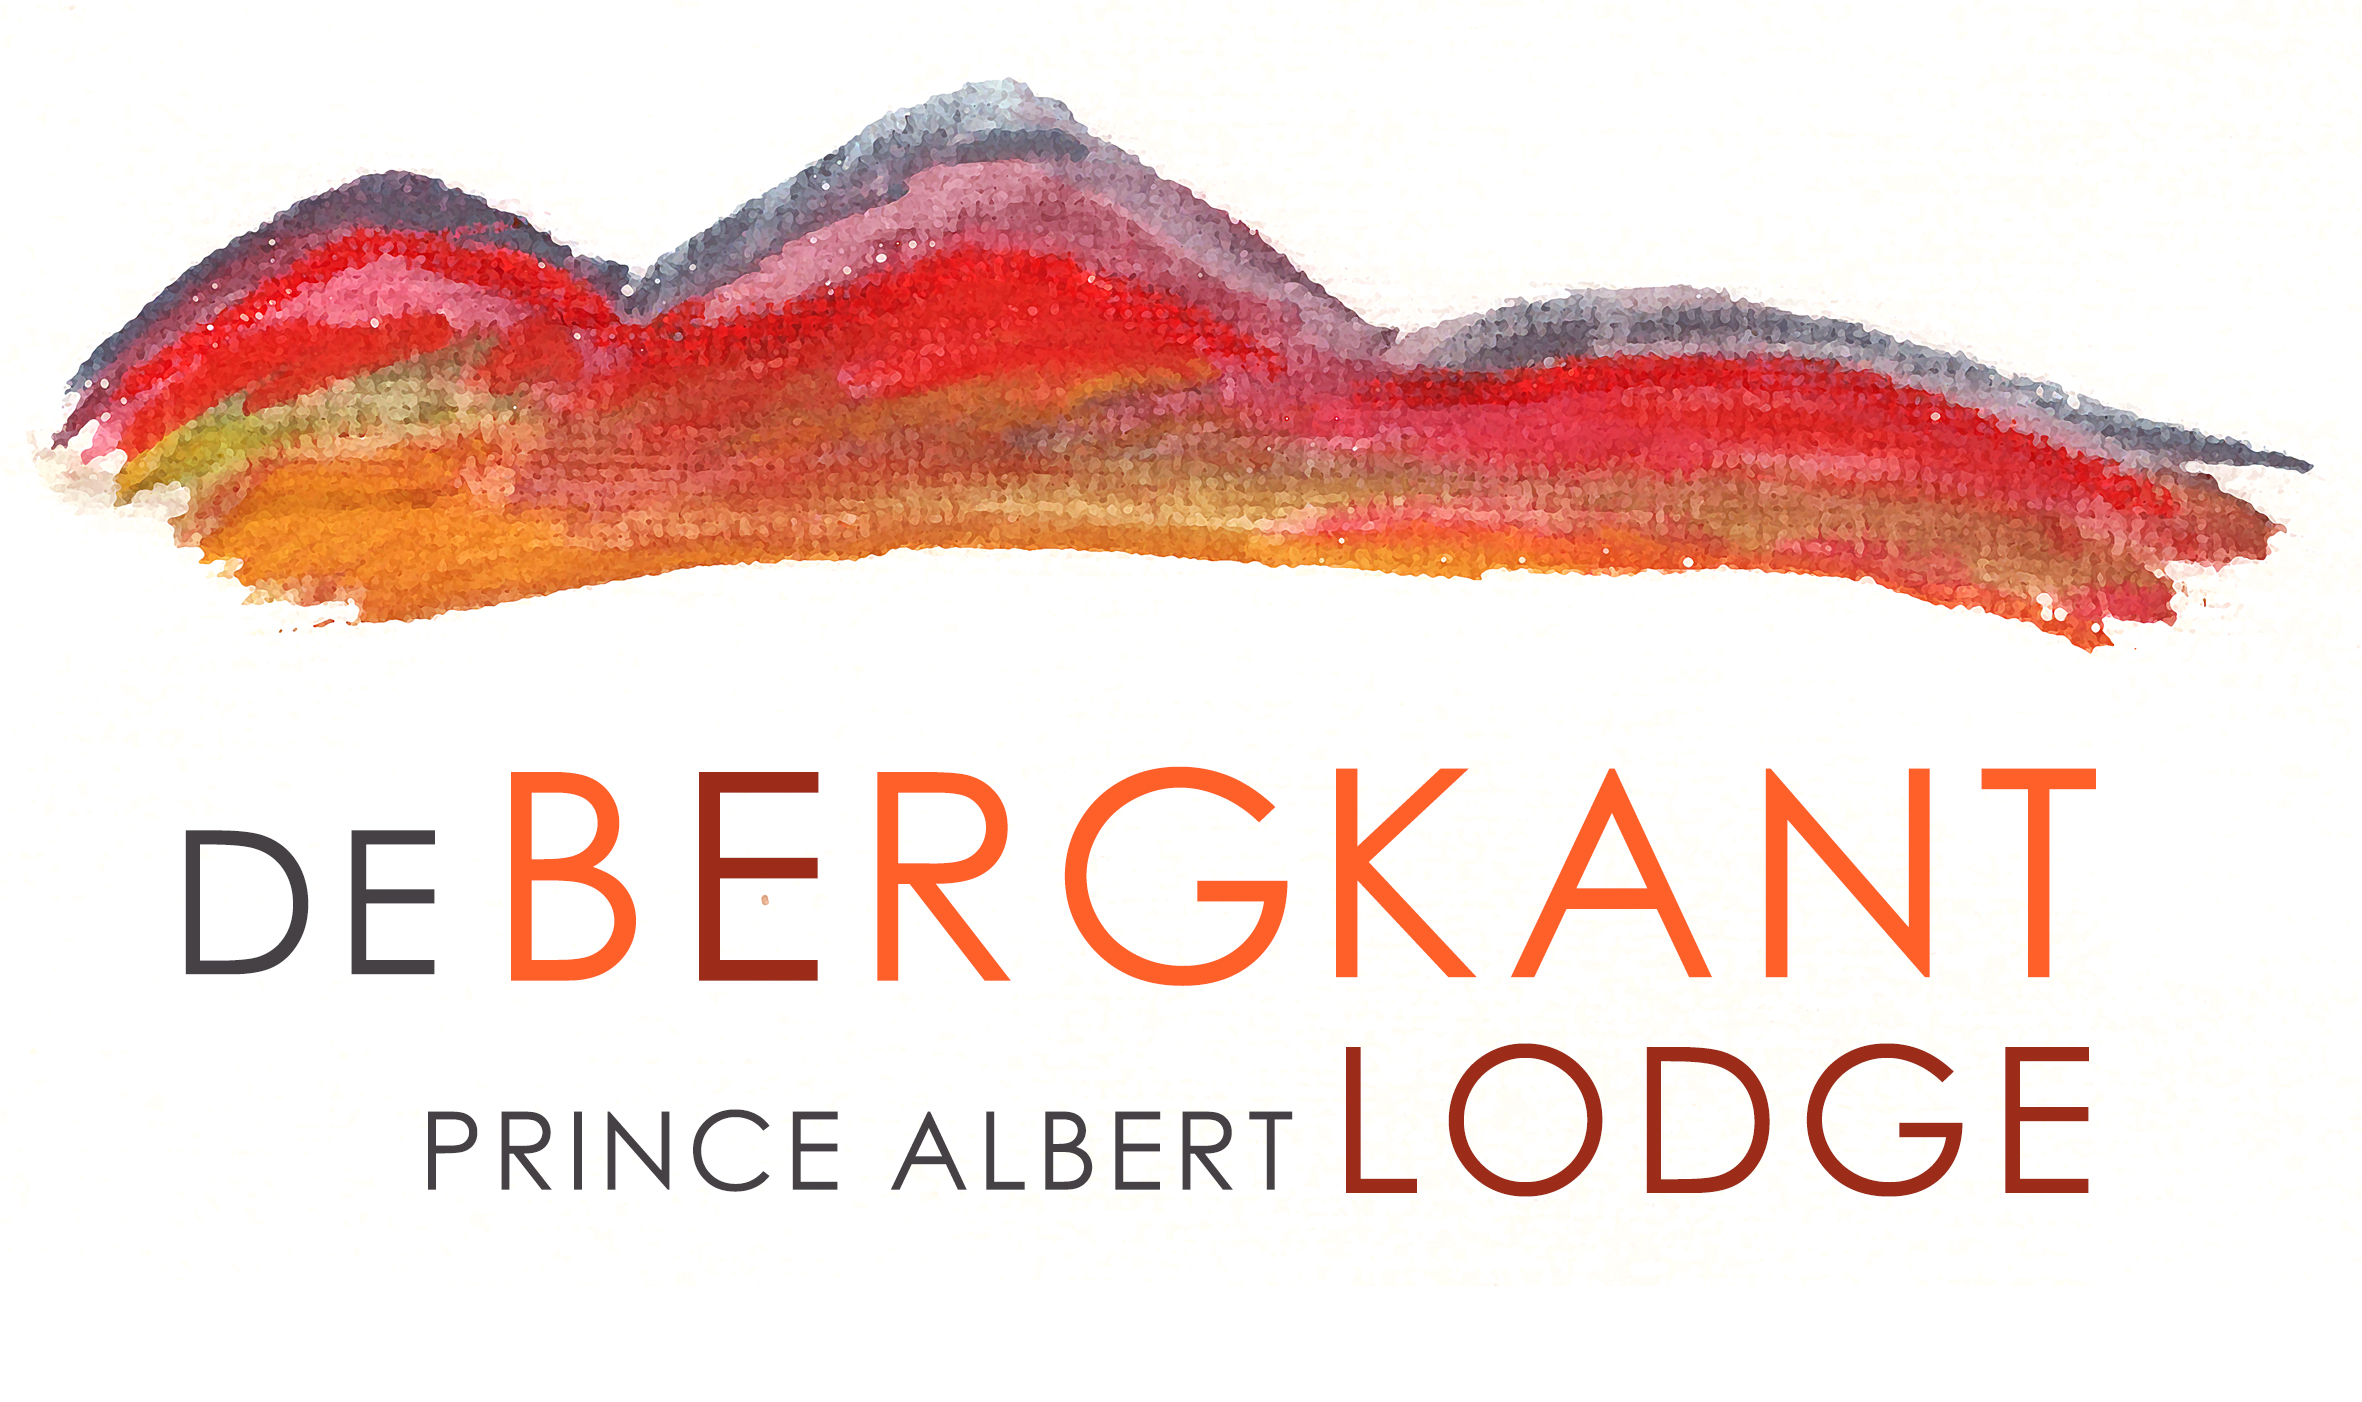 De Bergkant Lodge